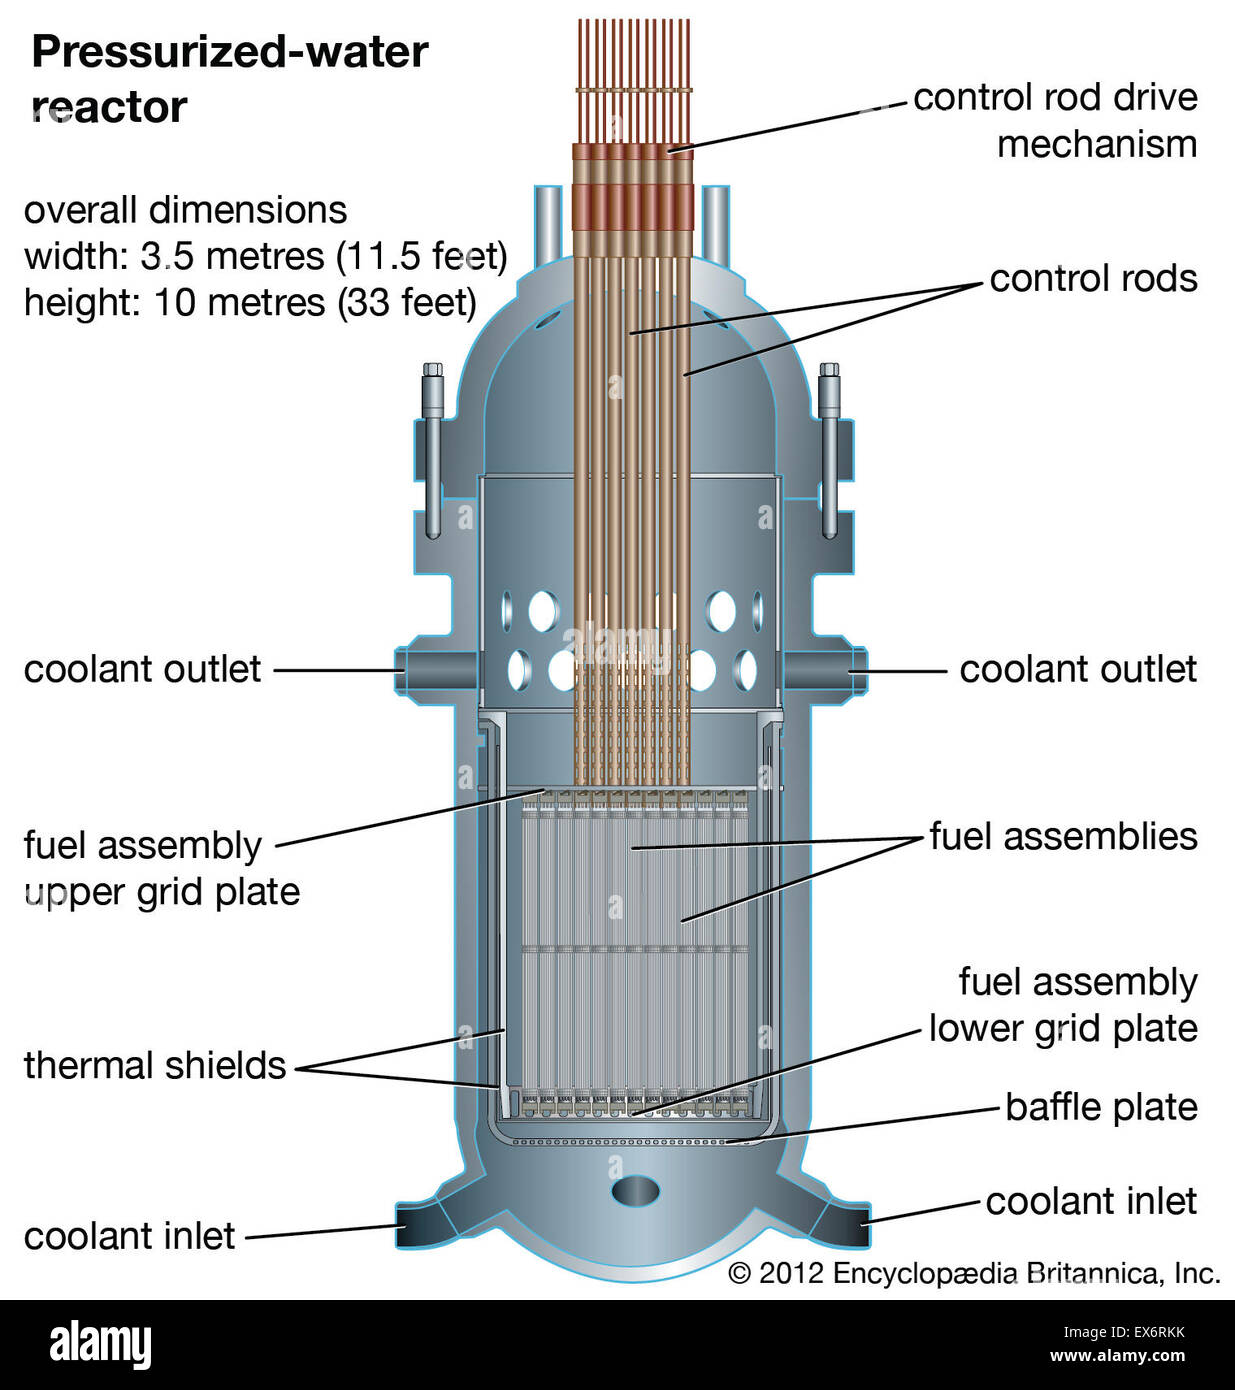 Pressurized-water reactor - Stock Image